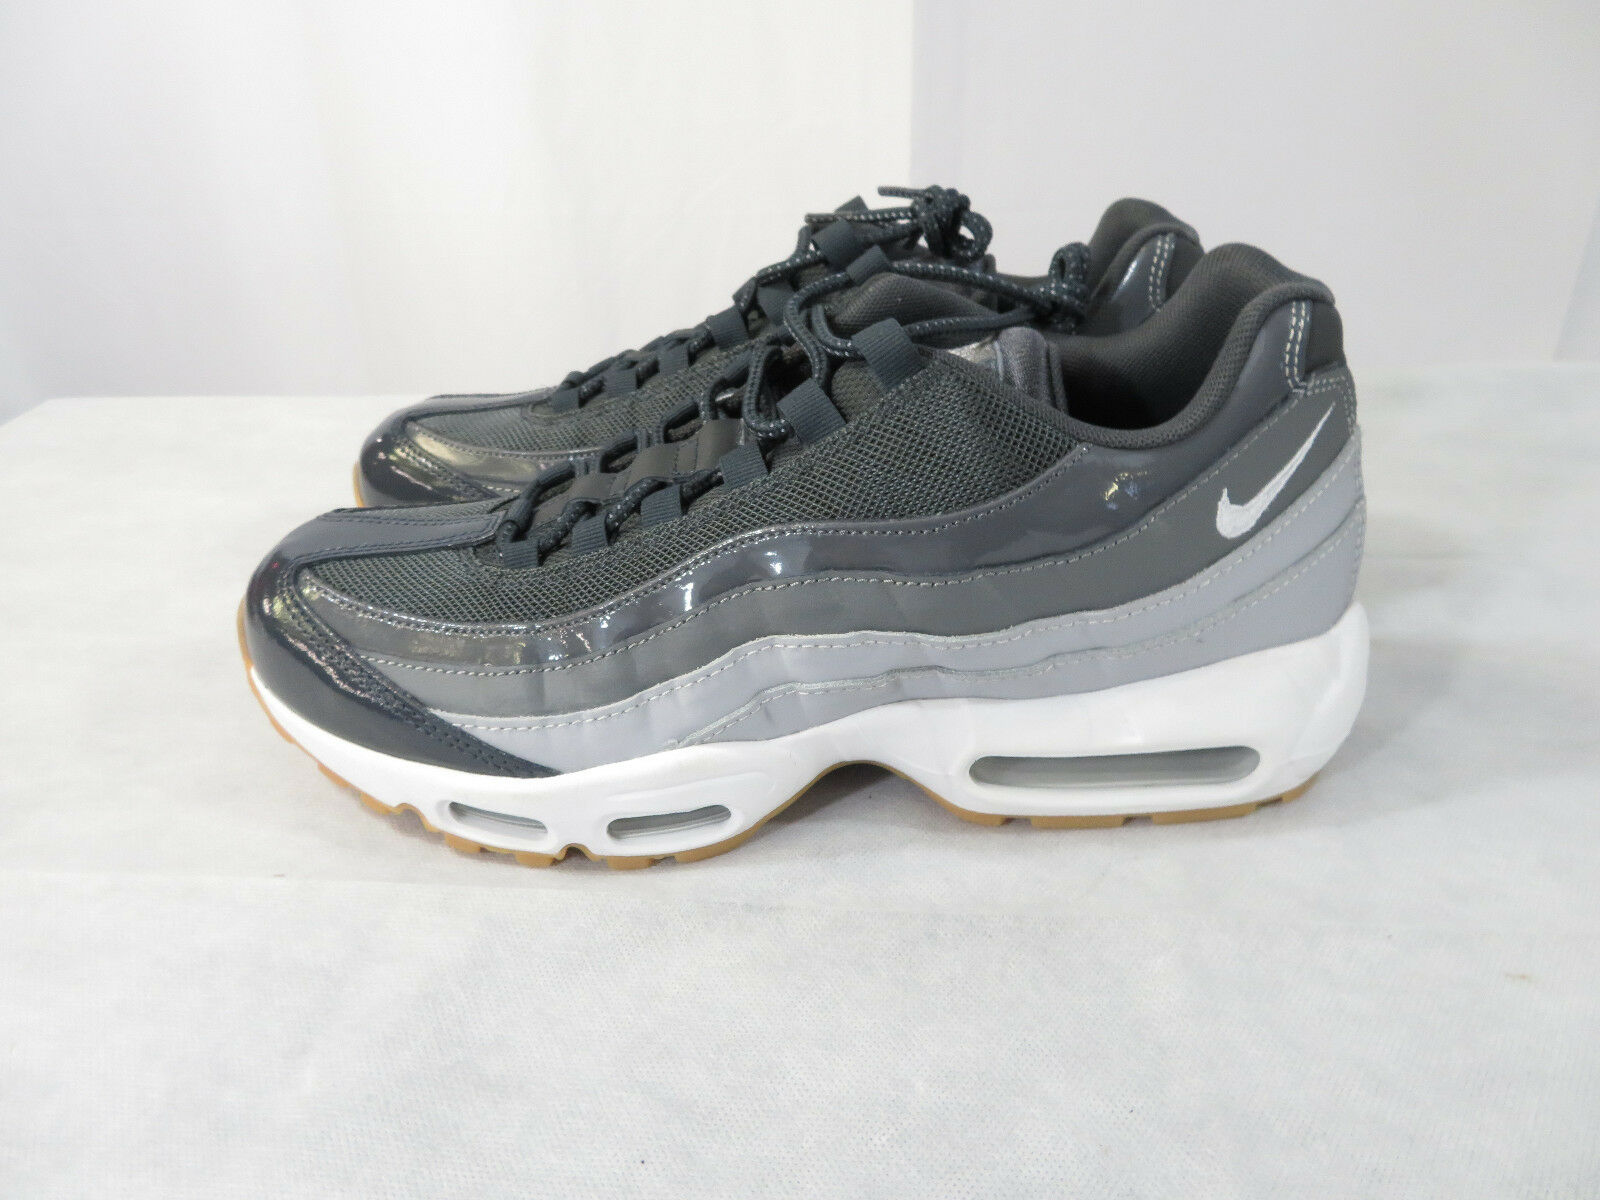 Wmns Nike Air Max 95 Running Shoes Anthracite Wolf Grey White Size 12 307960-012